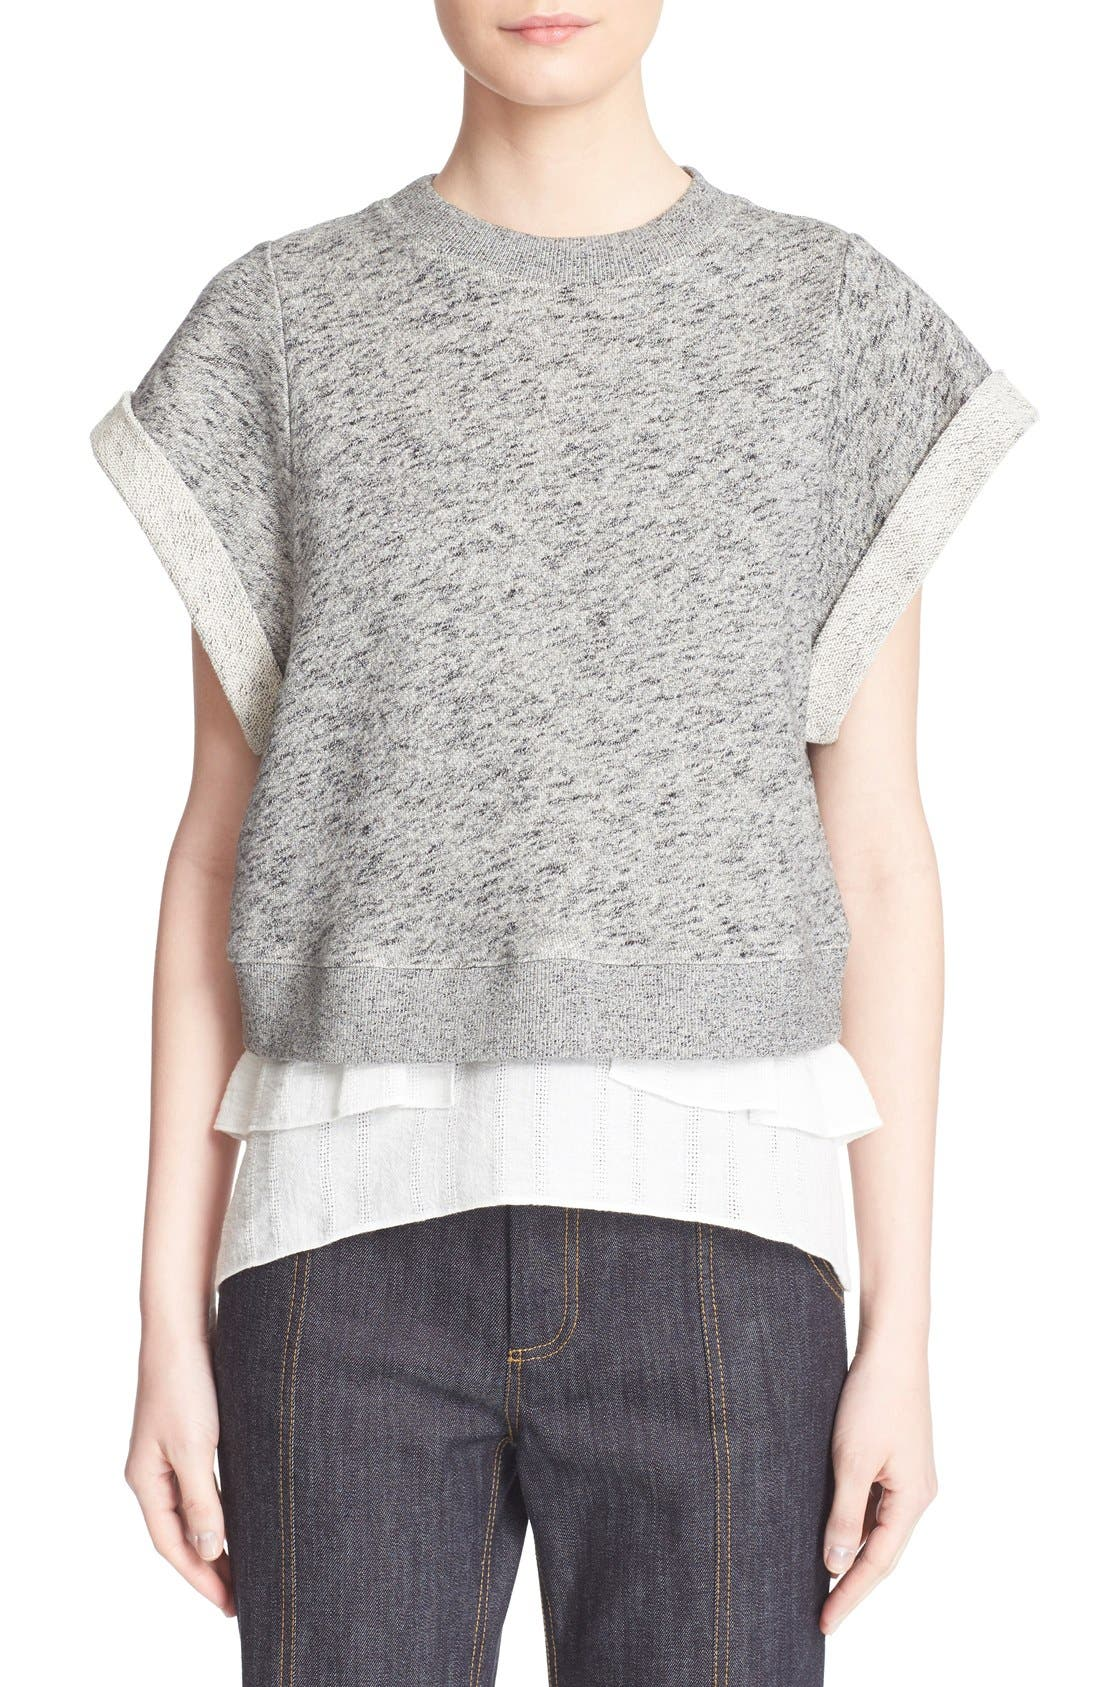 Alternate Image 1 Selected - Derek Lam 10 Crosby 2-in-1 Ruffle Hem Sweatshirt